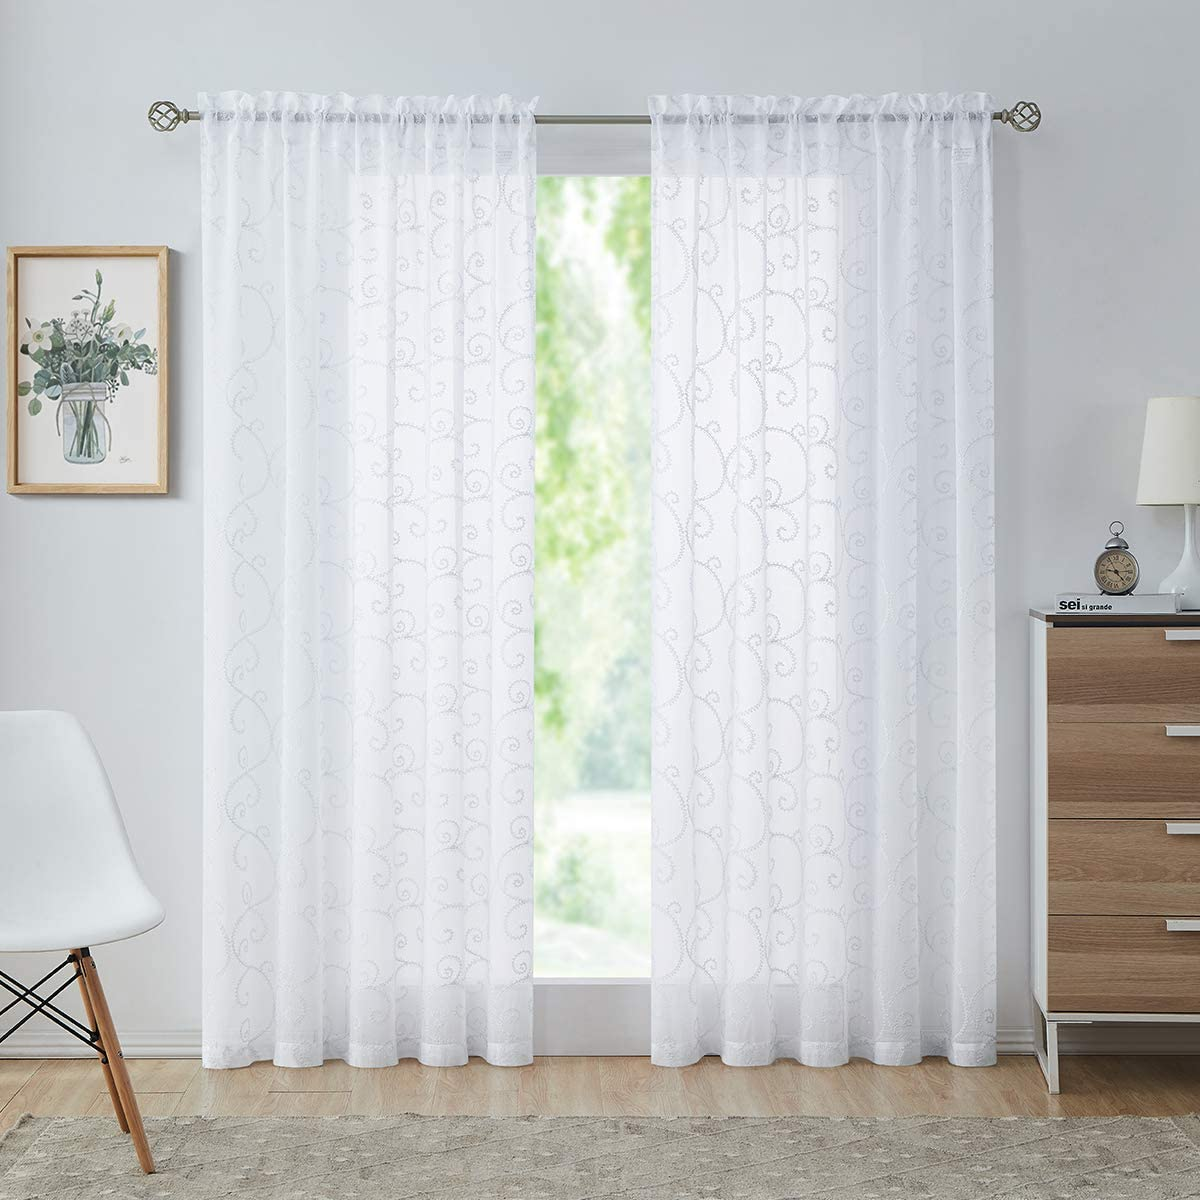 Variegatex White Sheer Curtains 84 Inches Long for Living Room, Scroll Floral Embroidery Light Filtering Linen Texture Rod Pocket Voile Window Treatment Drapes for Bedroom, 54x84, 2 Panels